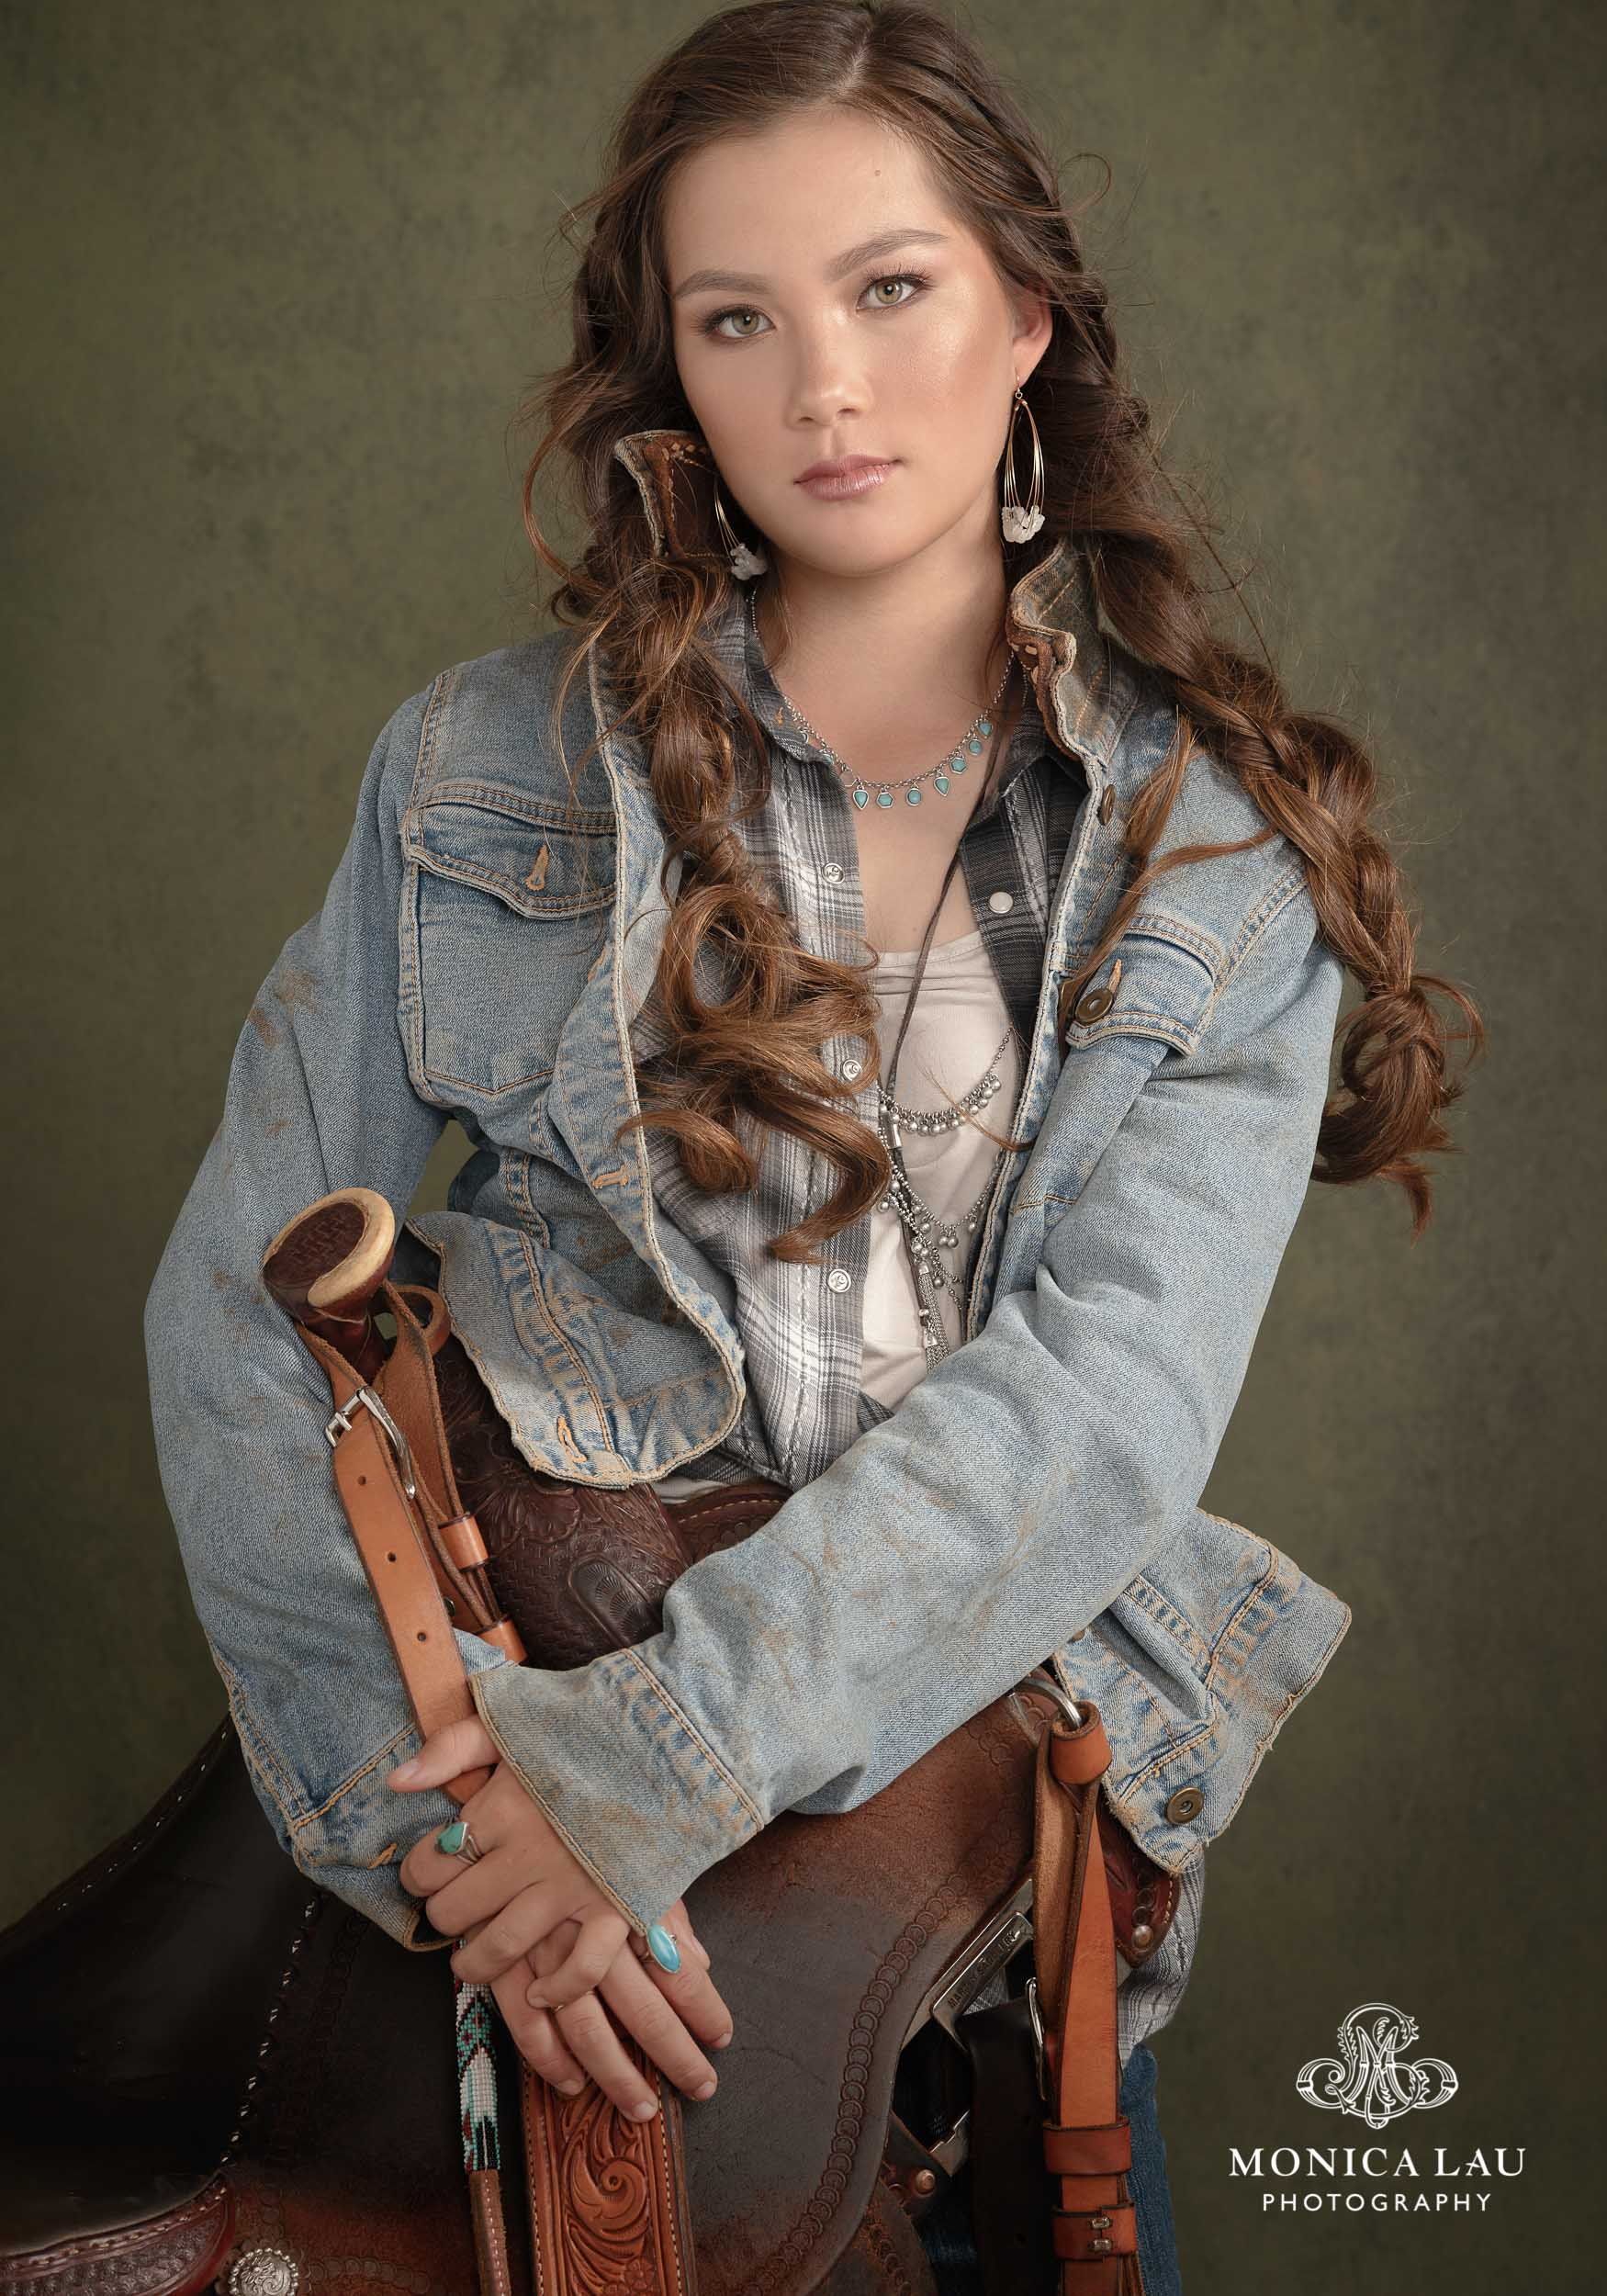 19MonicaLauPhotography-ShelbyWallenCowgirlPortraits0738-3-2.jpg